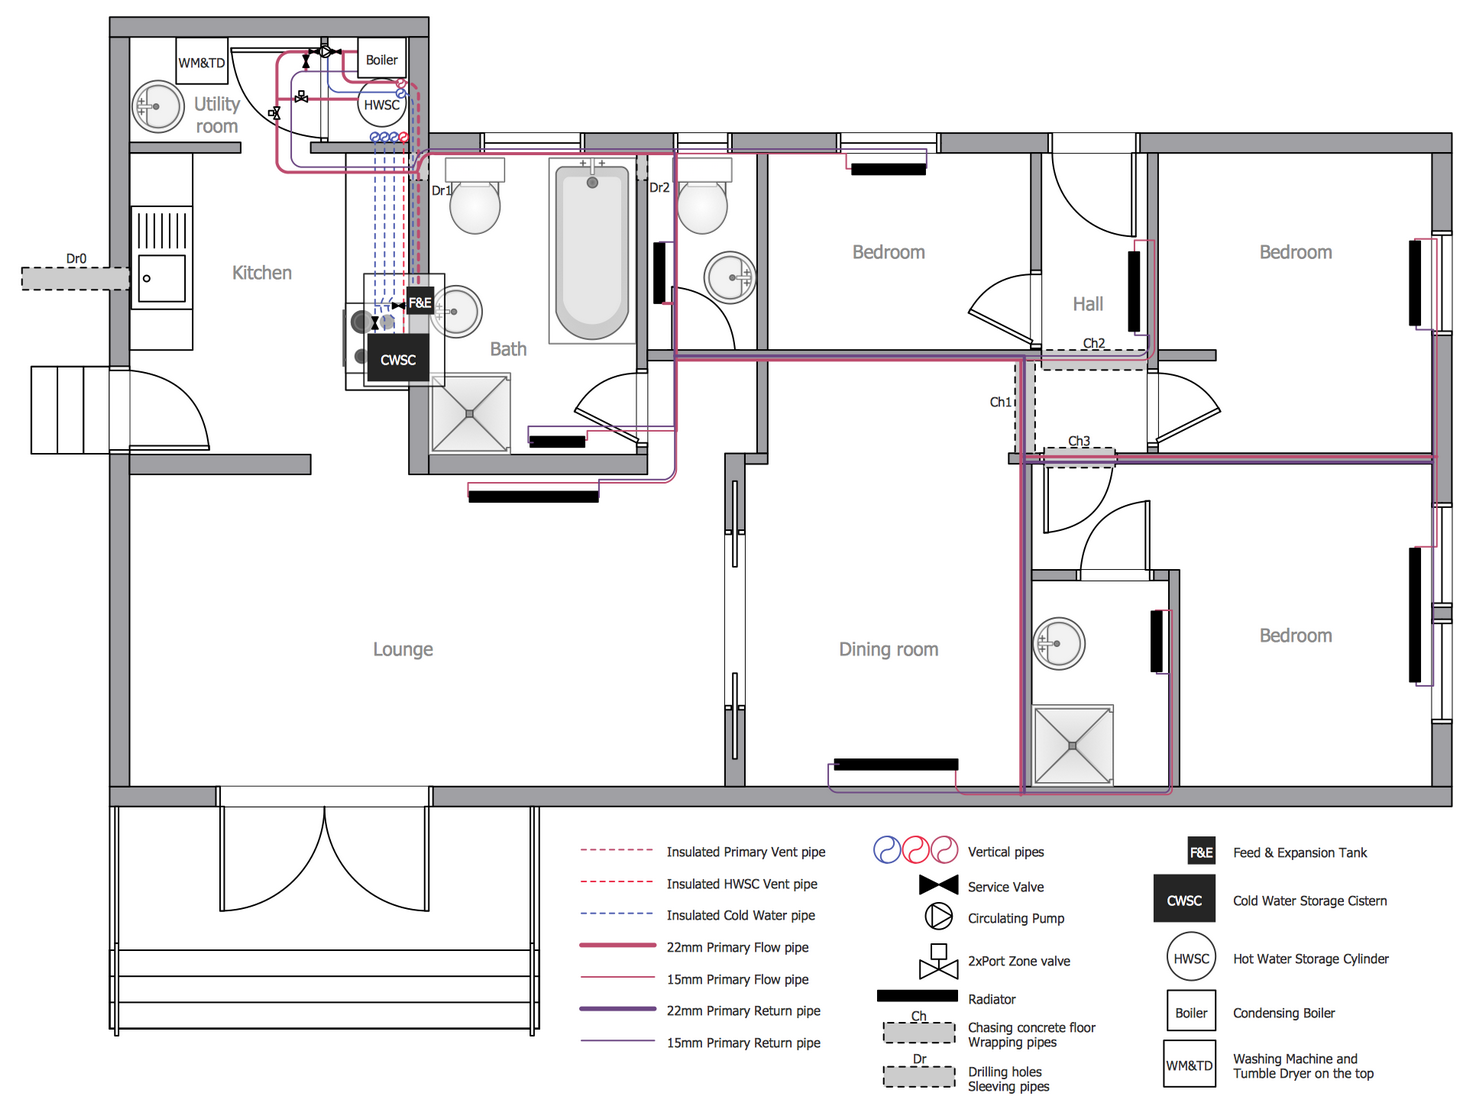 Plumbing and piping plans solution for Professional house plans